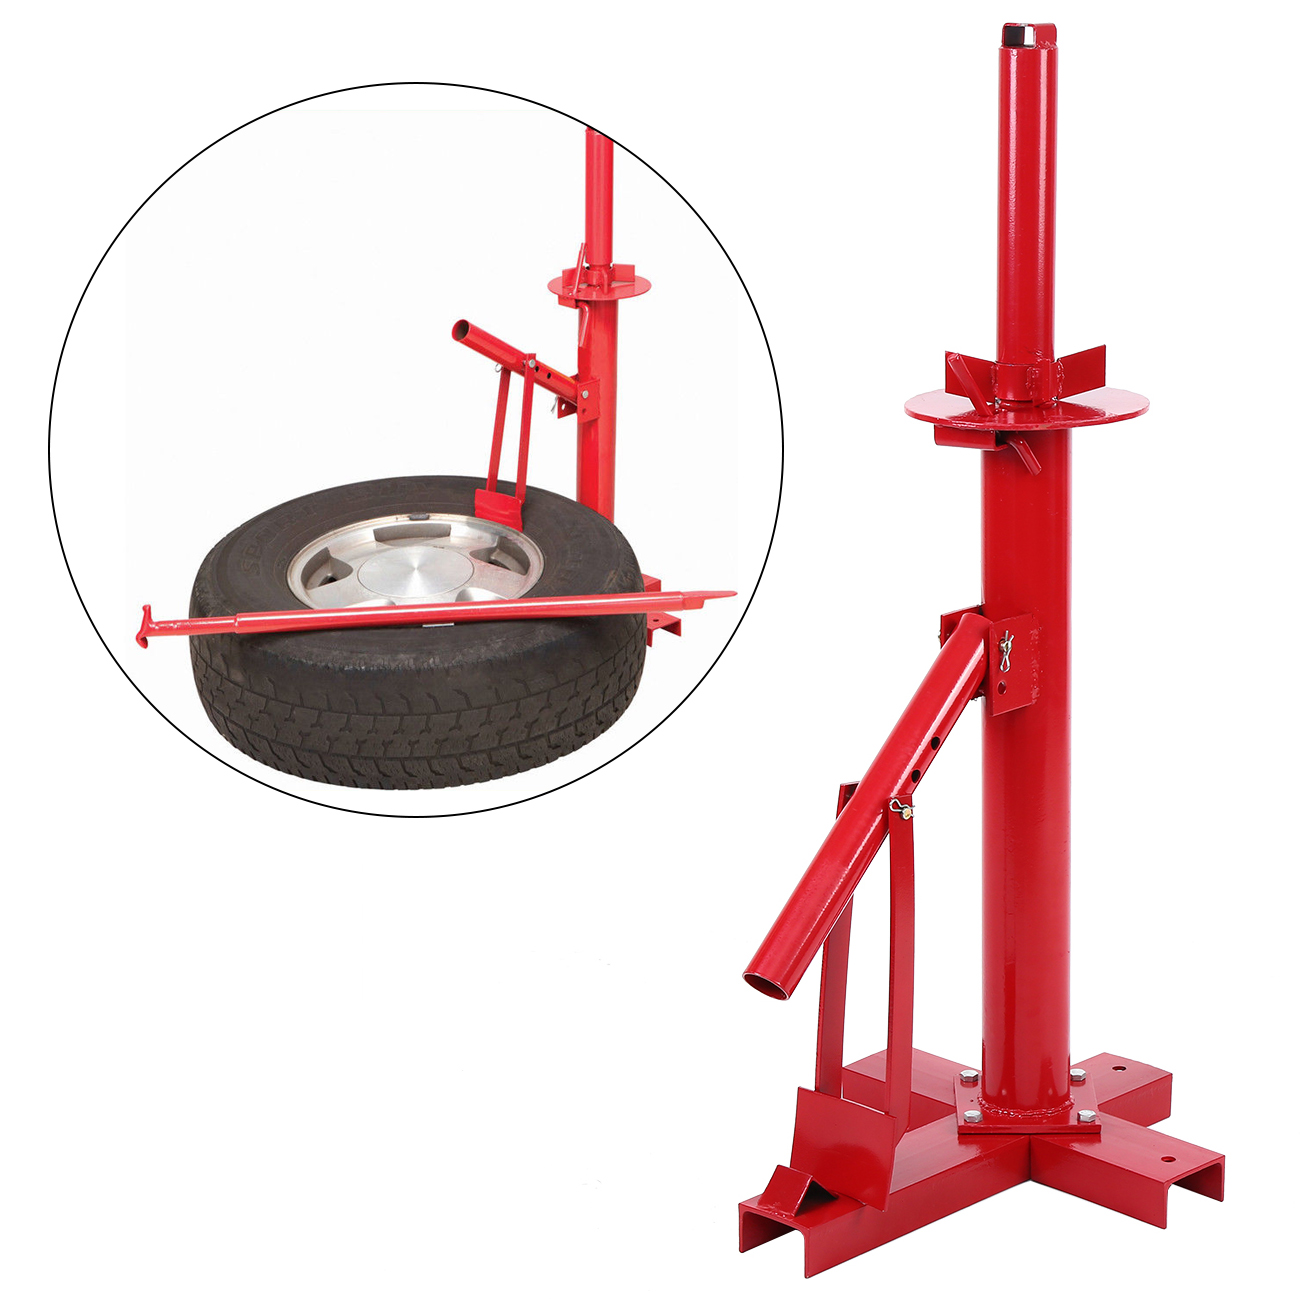 Samger Tire Changer Manual Operation Tire Changing Mach For Car Truck Van Camper Caravan Tire Dismantling Machine Vacuum Red